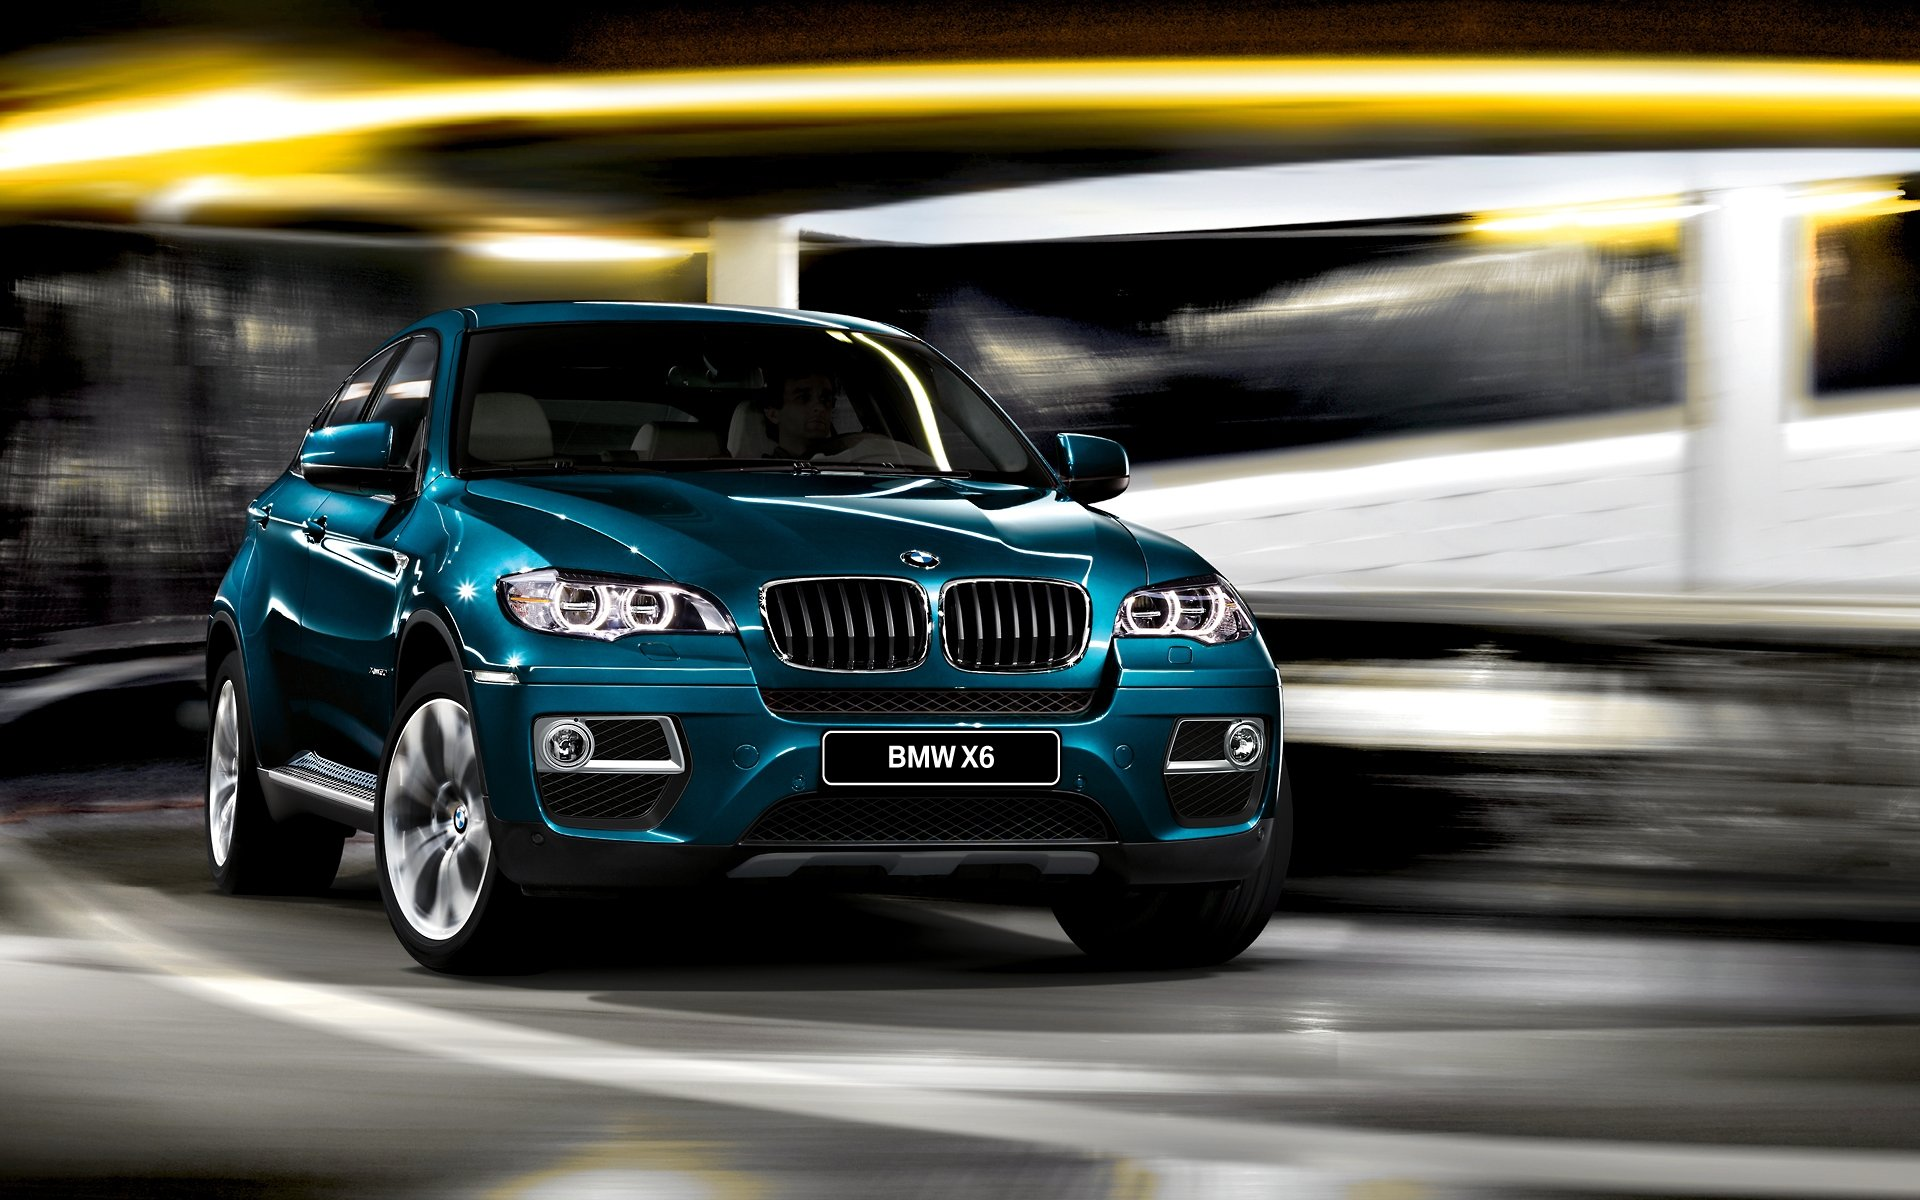 Bmw X6 Wallpapers Hd For Desktop Backgrounds